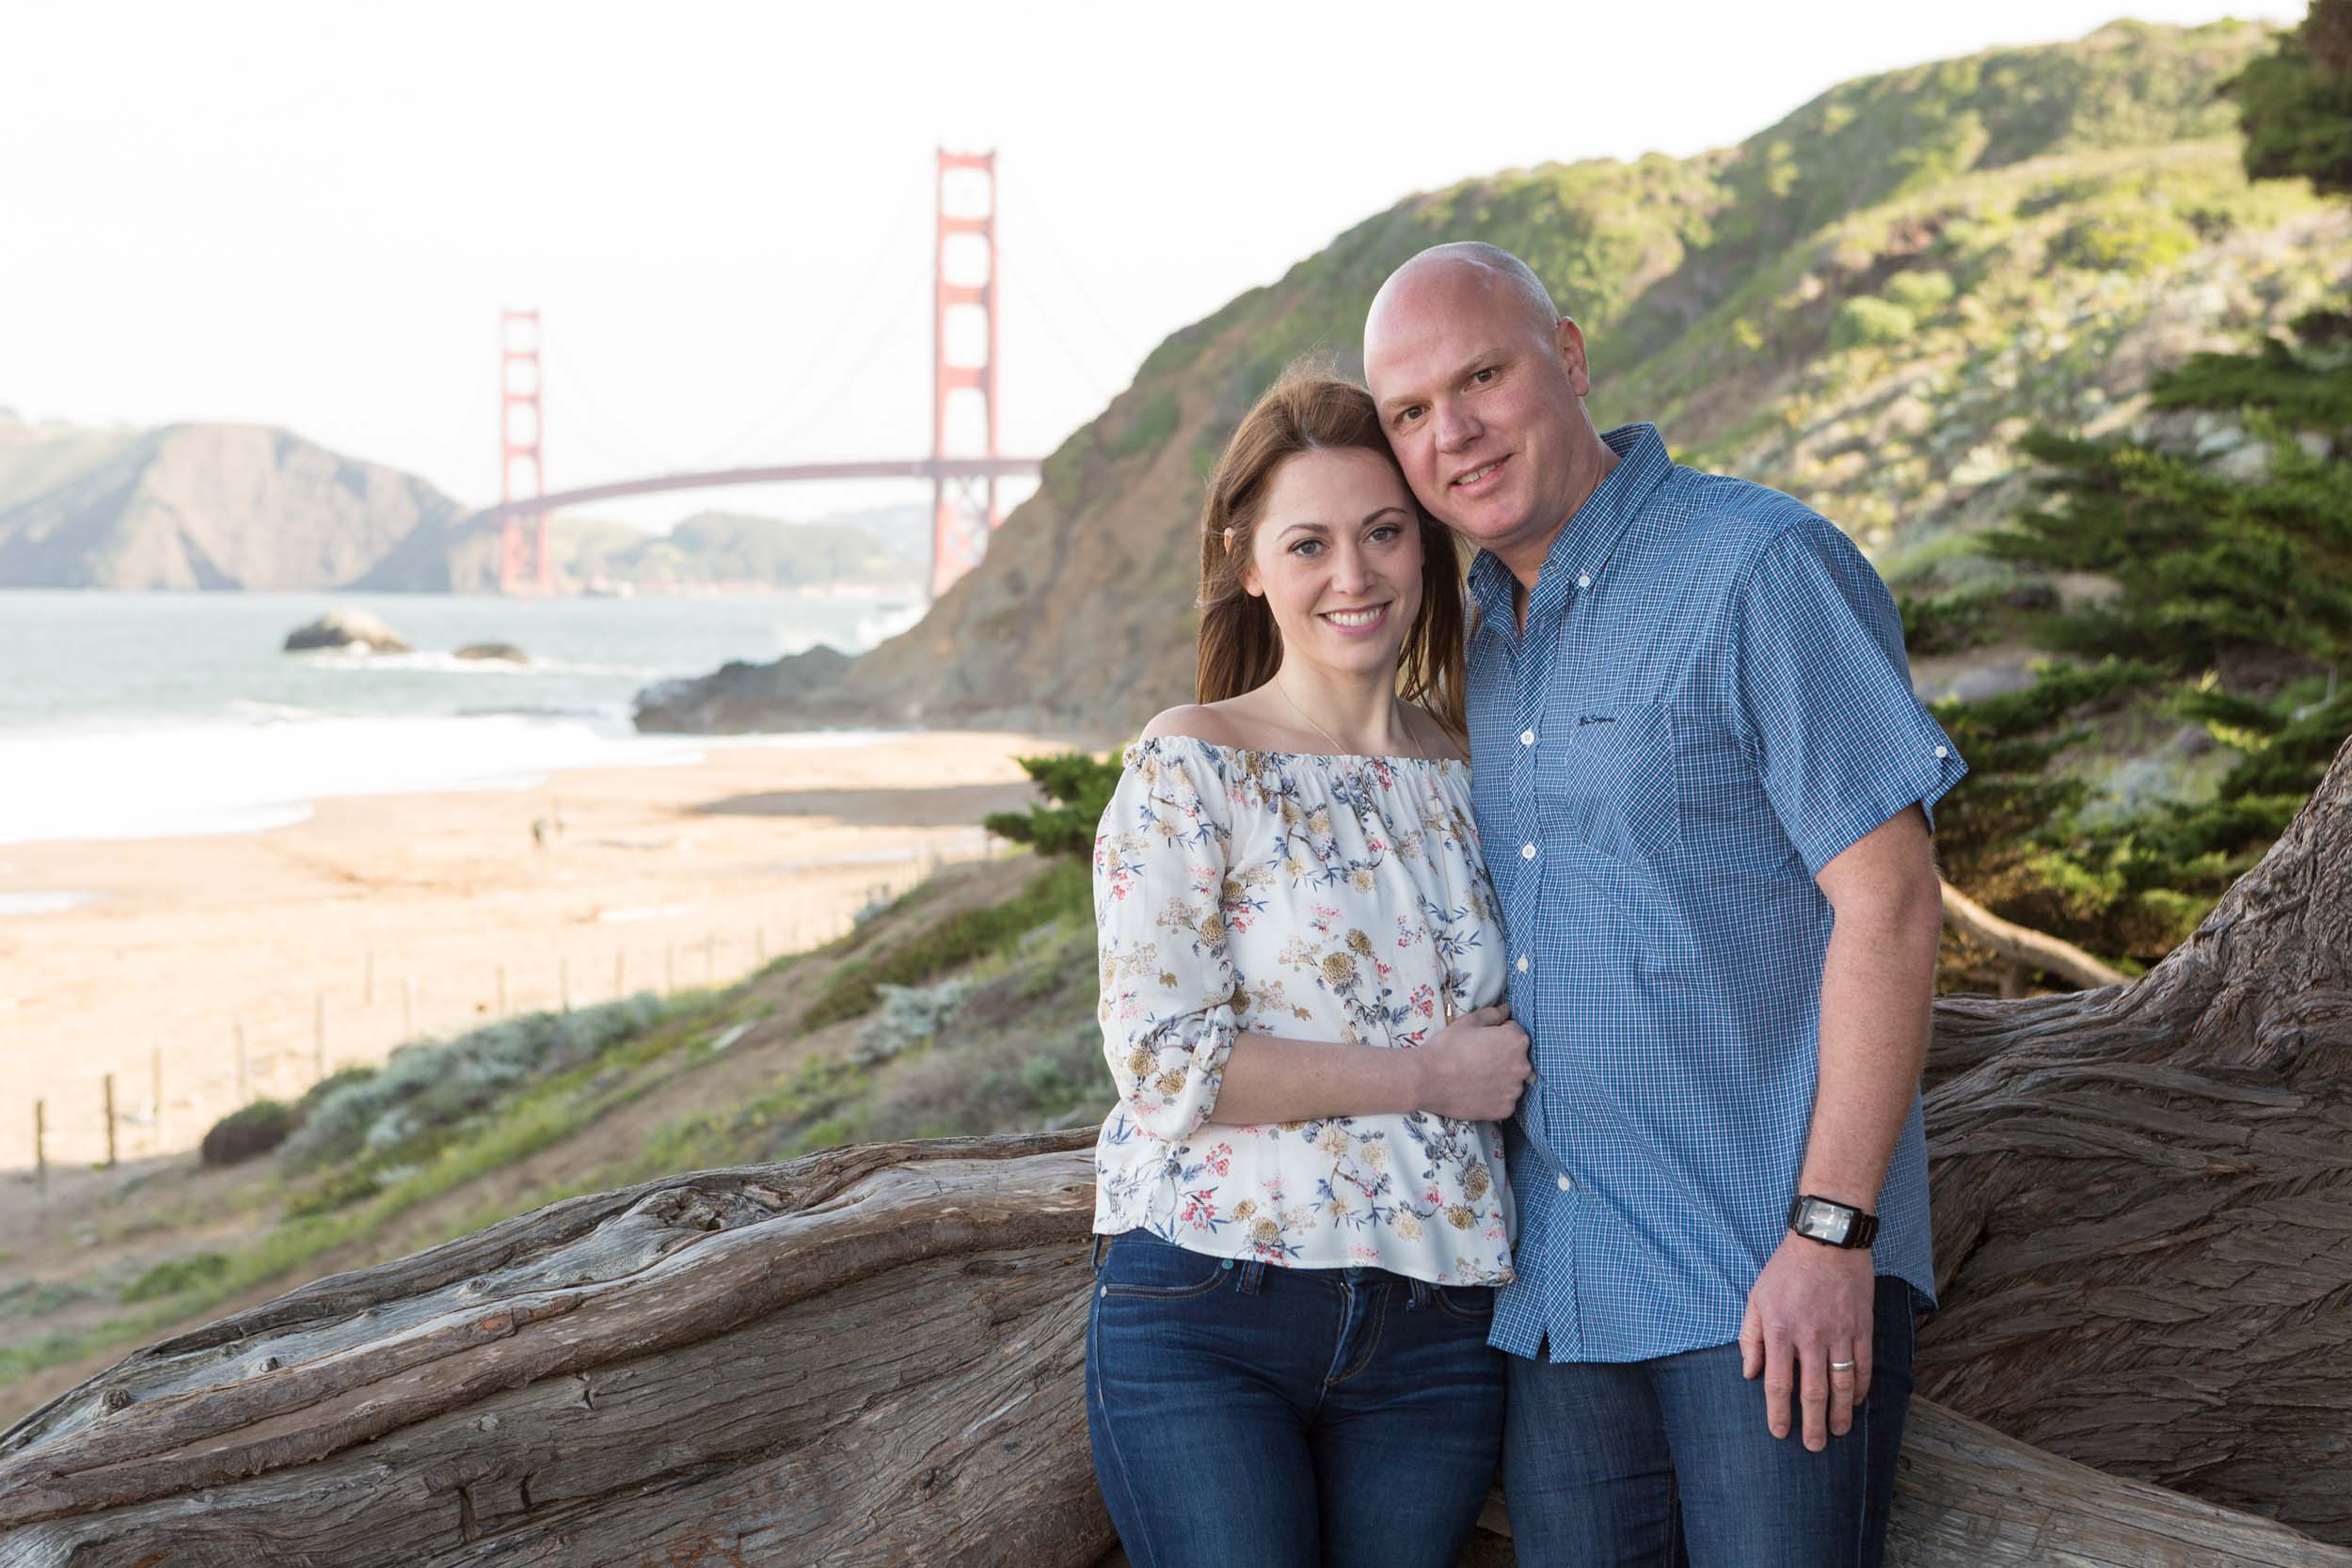 A couple poses on a beach in front of the Golden Gate Bridge in San Francisco.